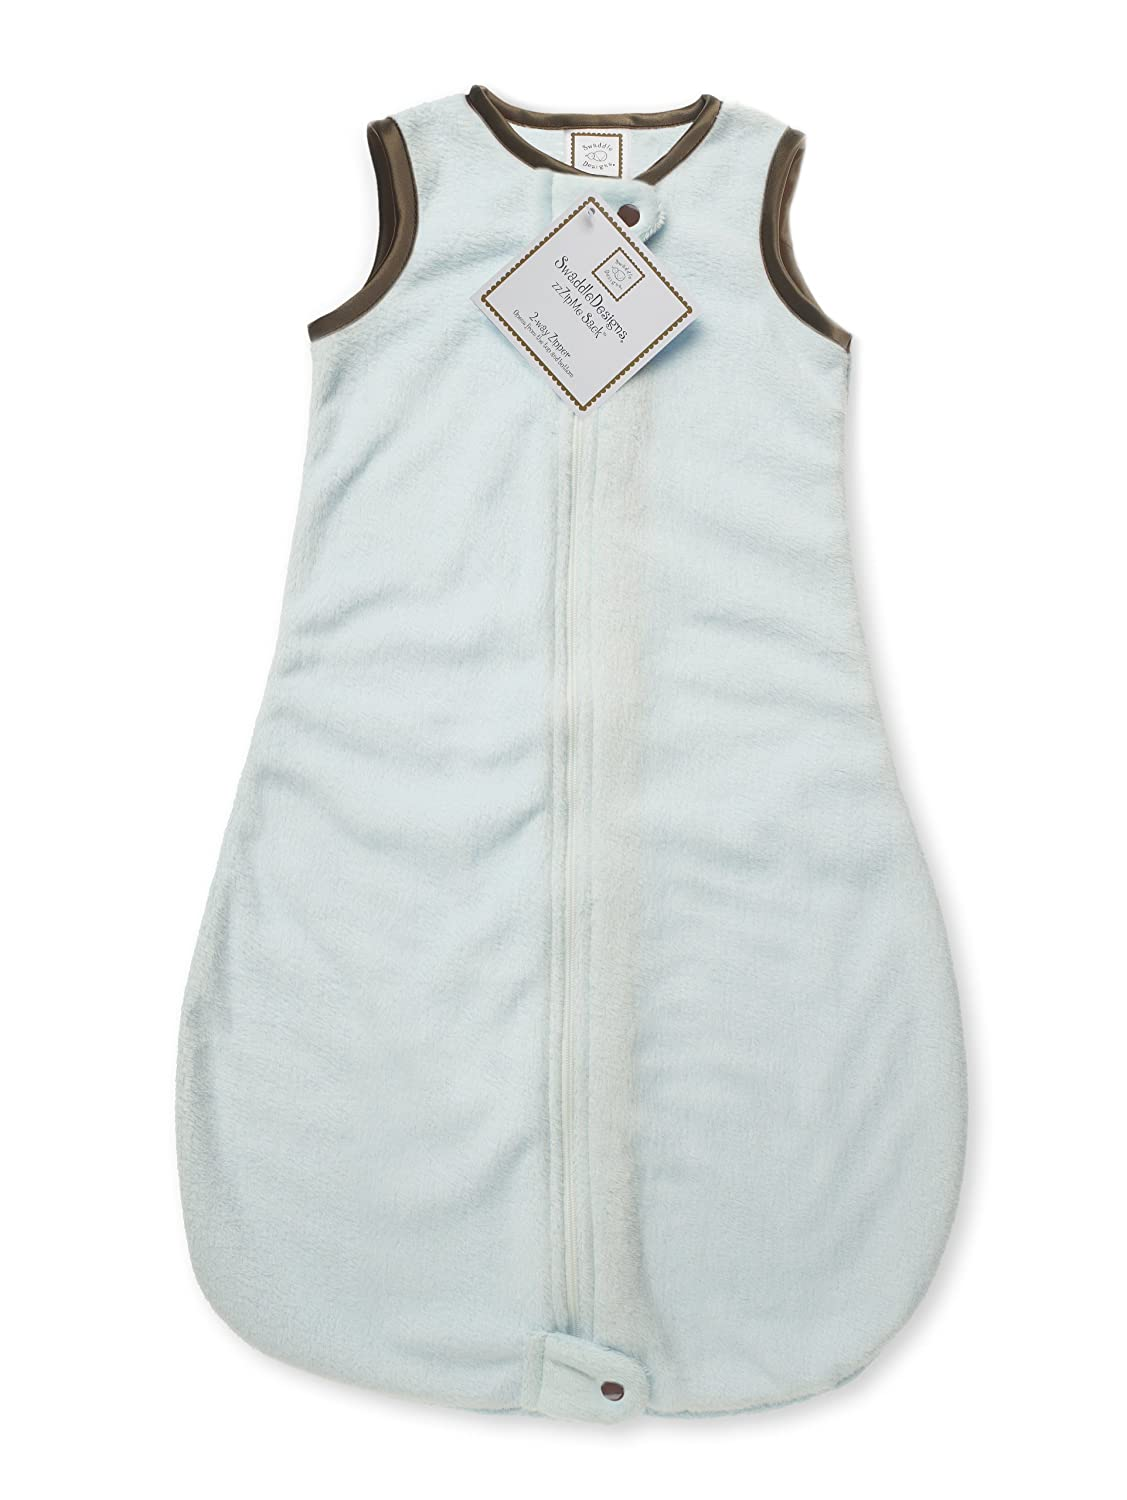 SwaddleDesigns Baby Velvet Sleeping Sack with 2-Way Zipper, Pastel Blue with Mocha Trim, 3-6MO SD-088PB-3MO